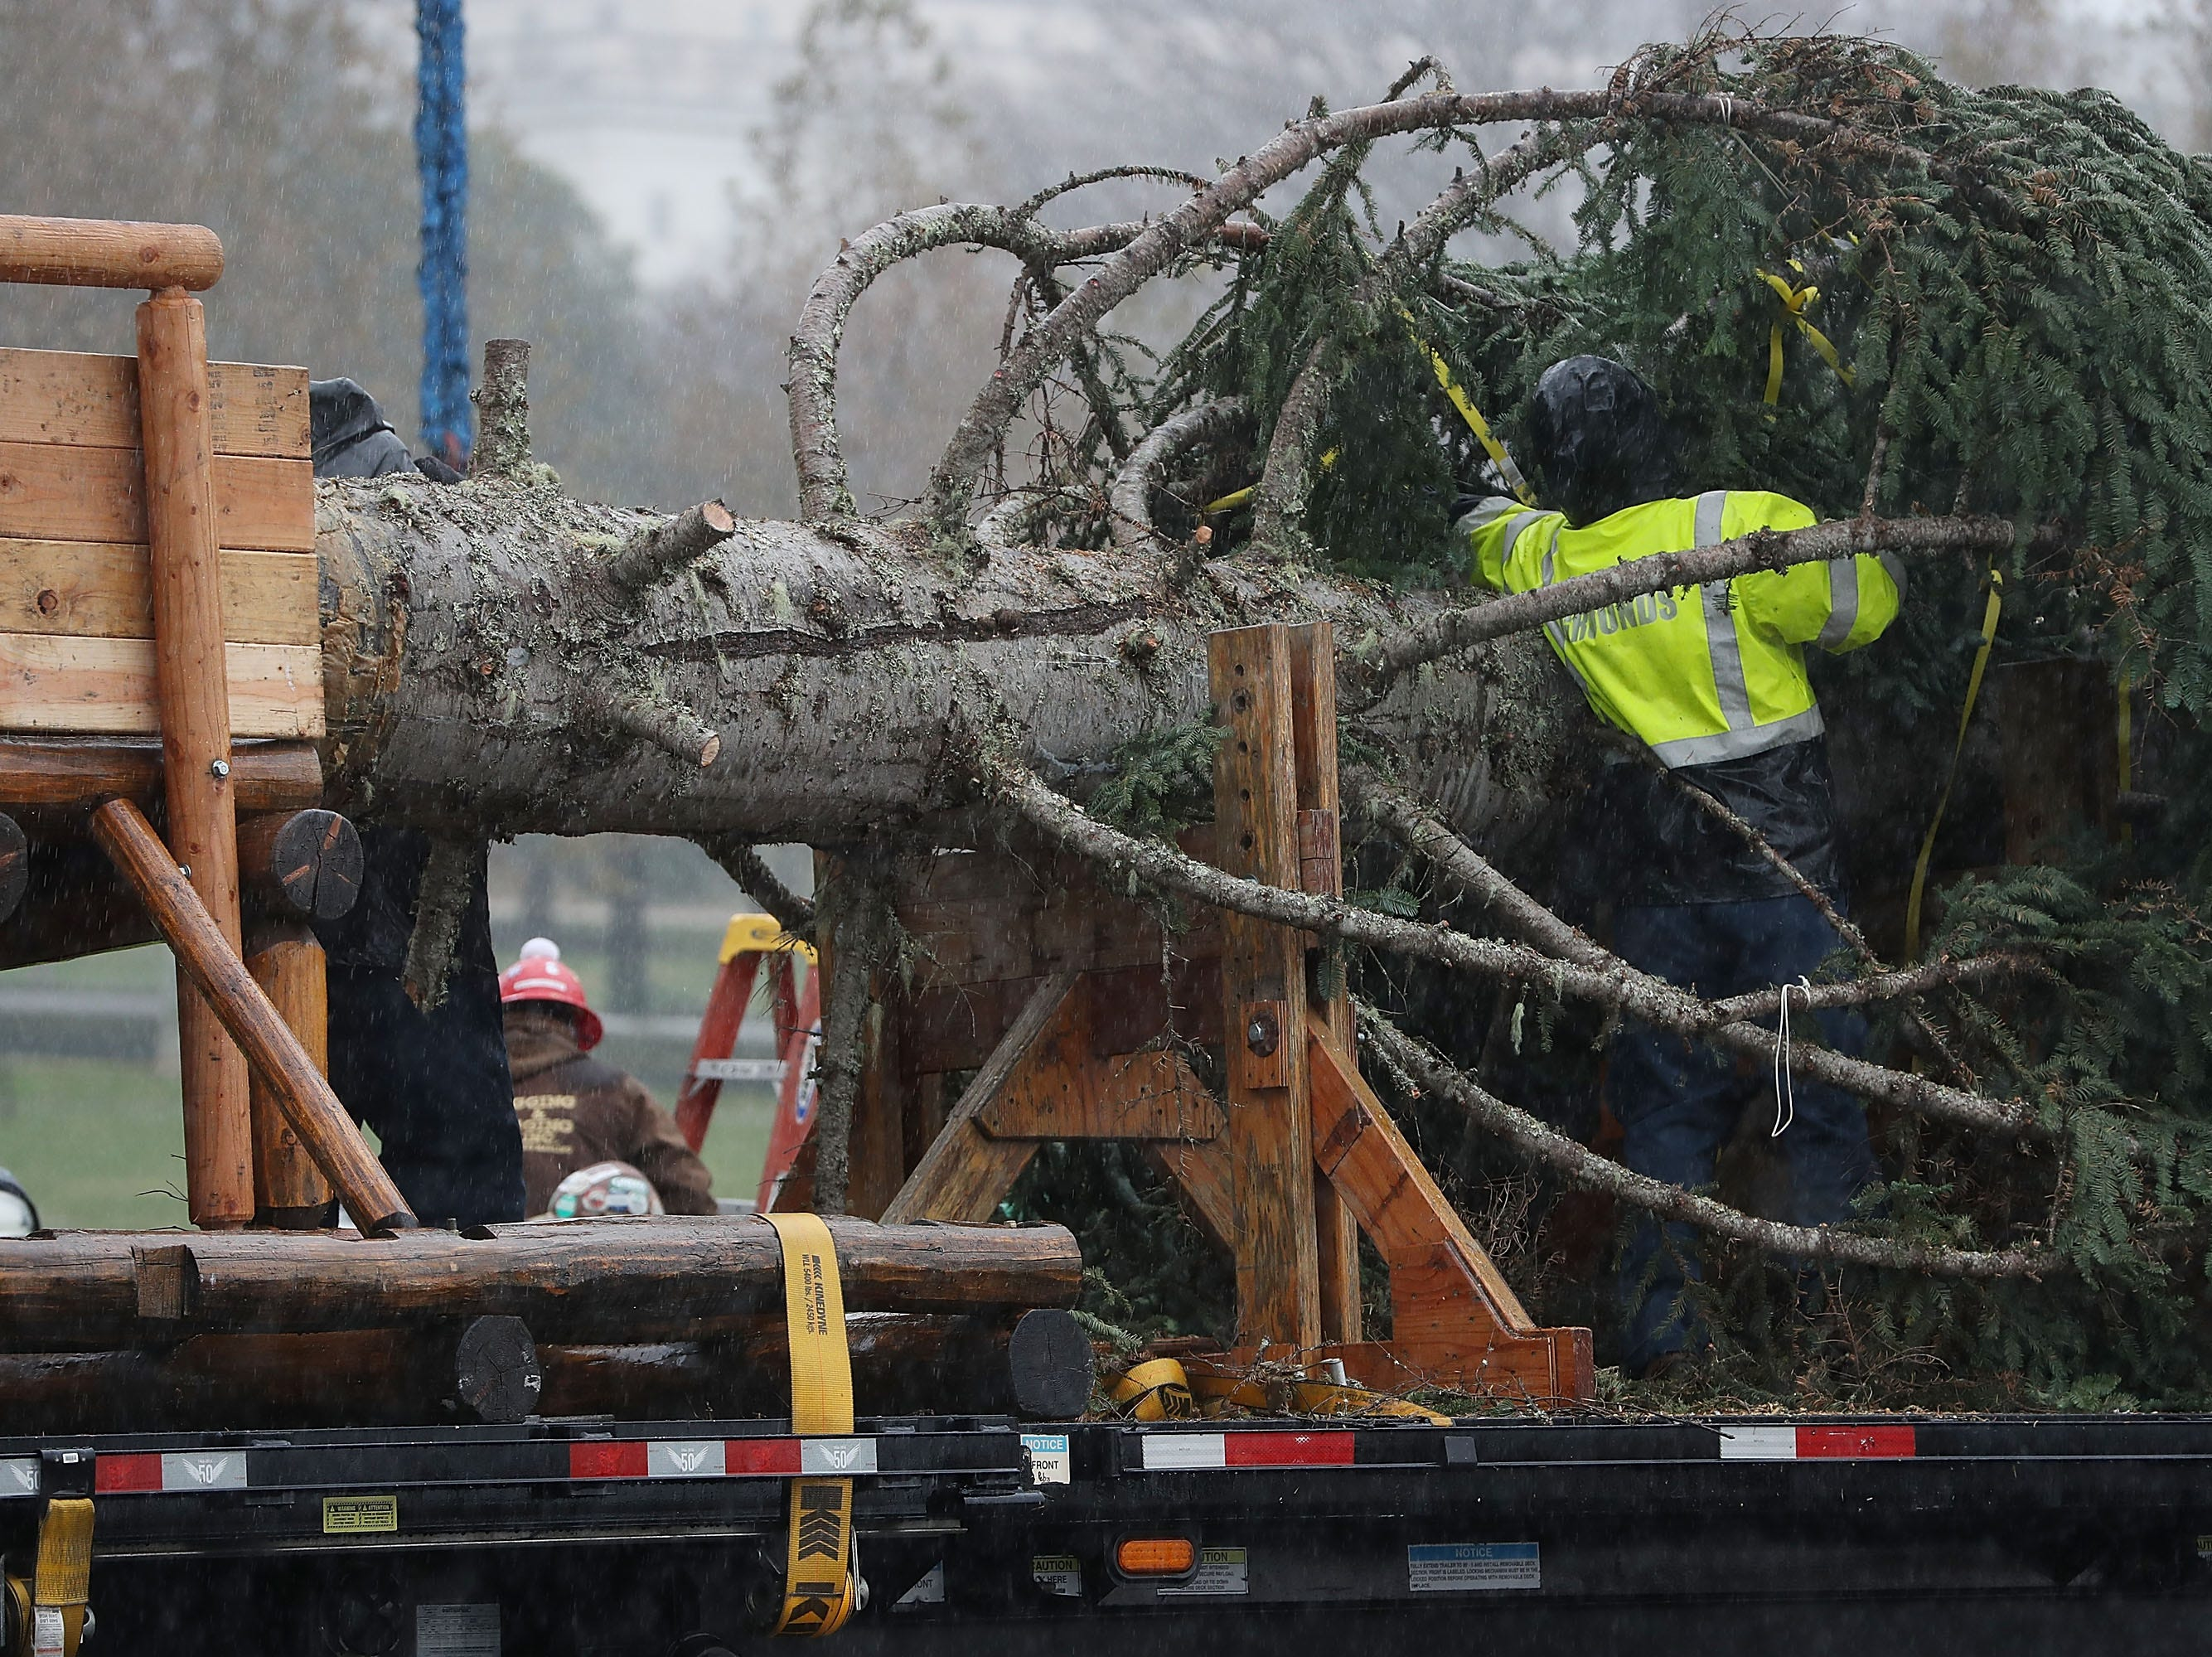 WASHINGTON, DC - NOVEMBER 26: Workers prepare the U.S. Capitol Christmas Tree to be lifted off of a flatbed before being installed on the west front of the U.S. Capitol, on November 26, 2018 in Washington, DC. The 80-foot tall Noble Fir is from Oregon's Willamette National Forest.